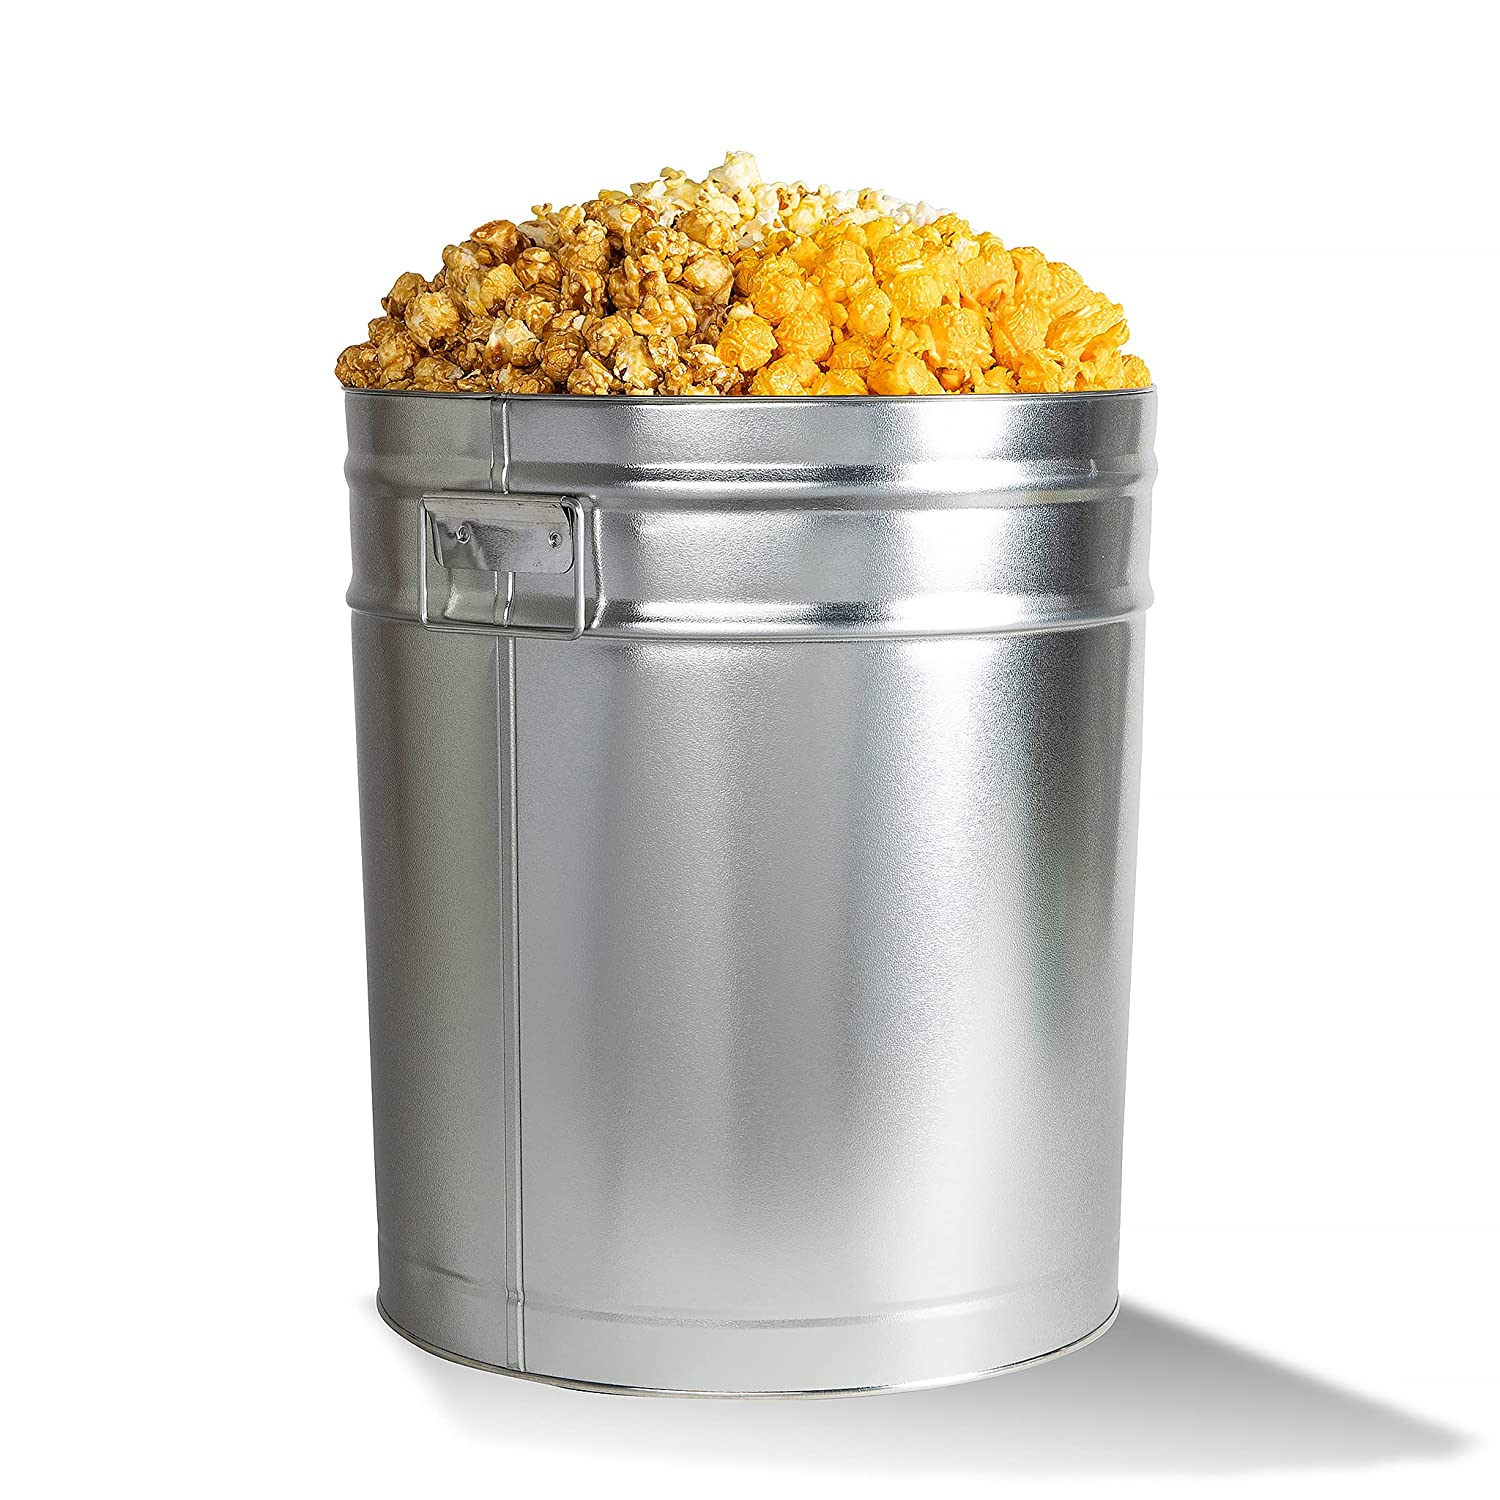 City Pop Don't miss the Quality inspection campaign 6.5 Popcorn Gallon Tin